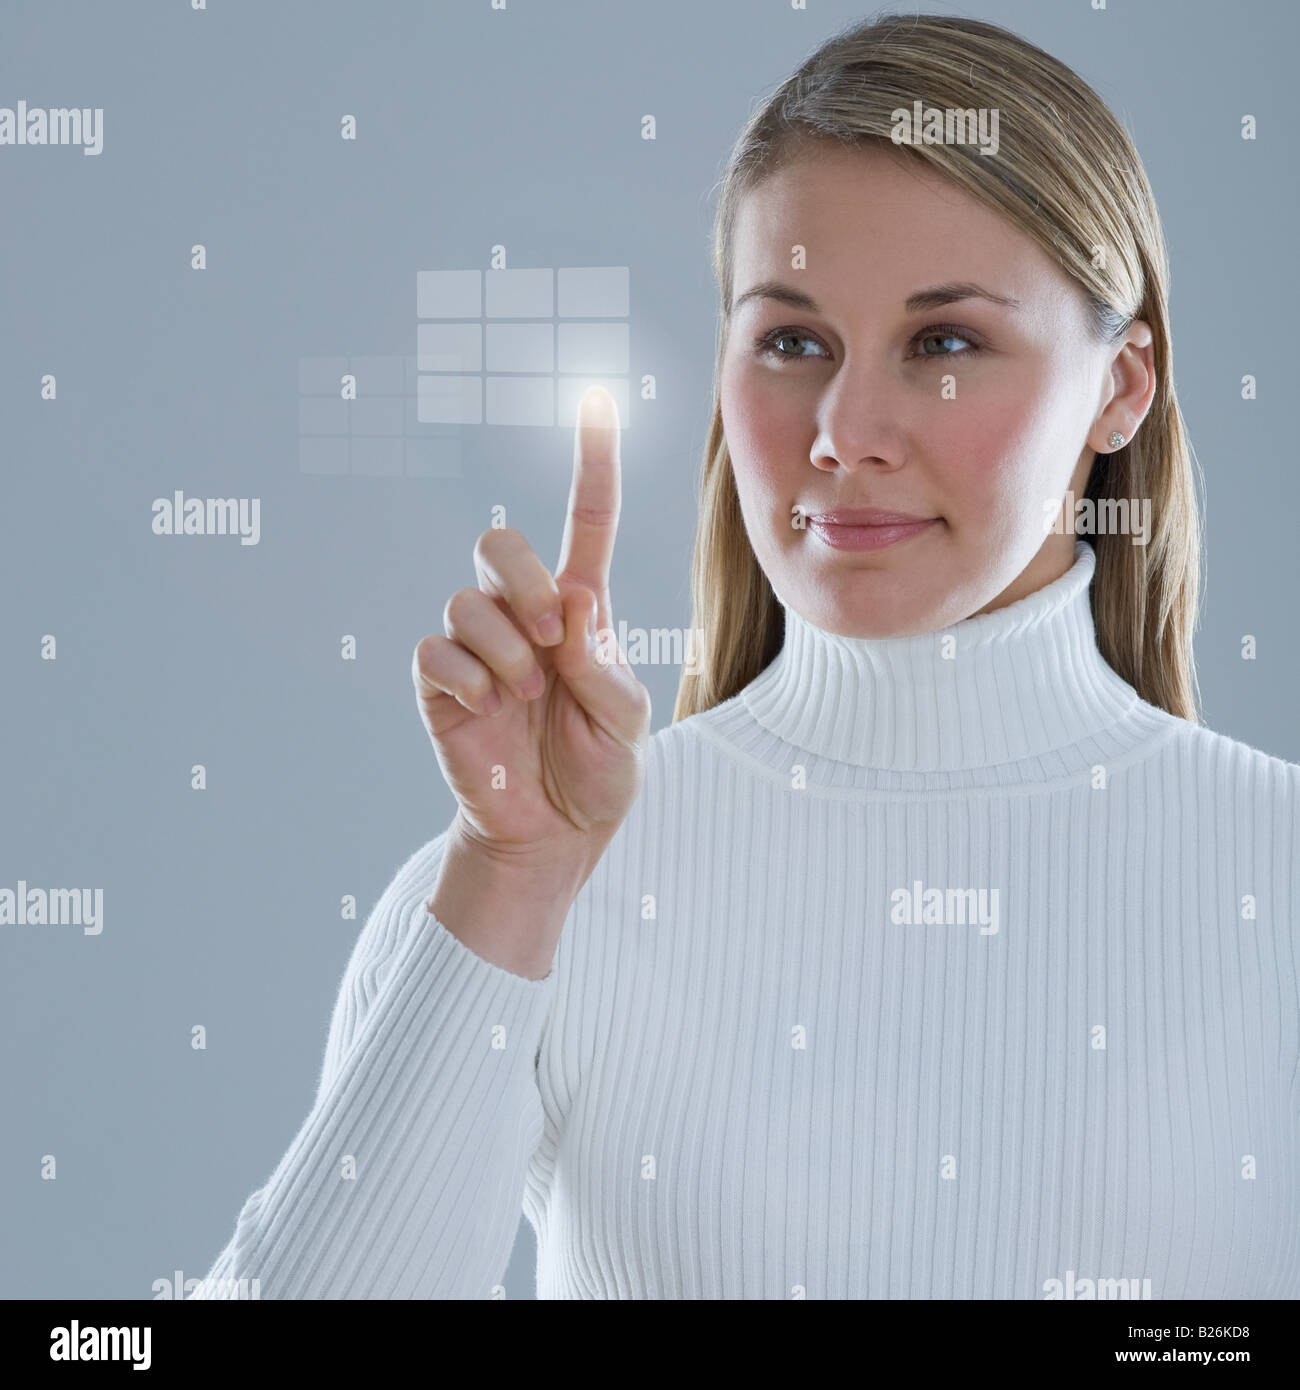 Woman touching lighted display - Stock Image